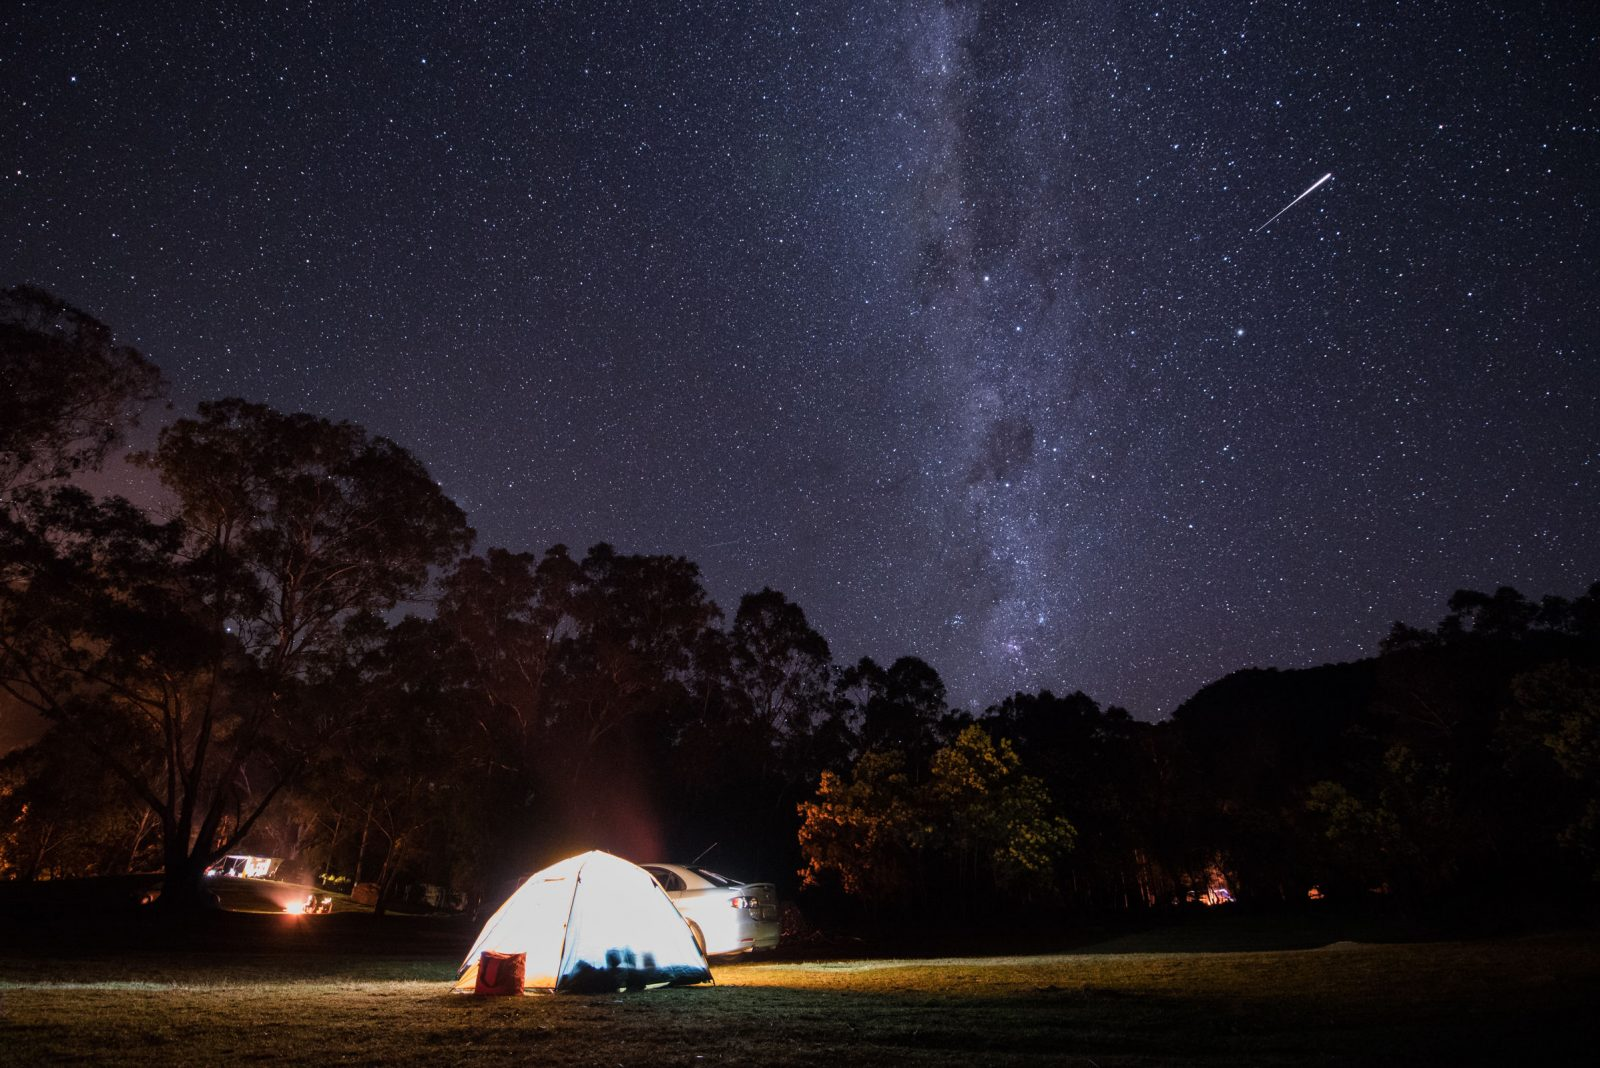 Campground at night under the stars in a NSW national park